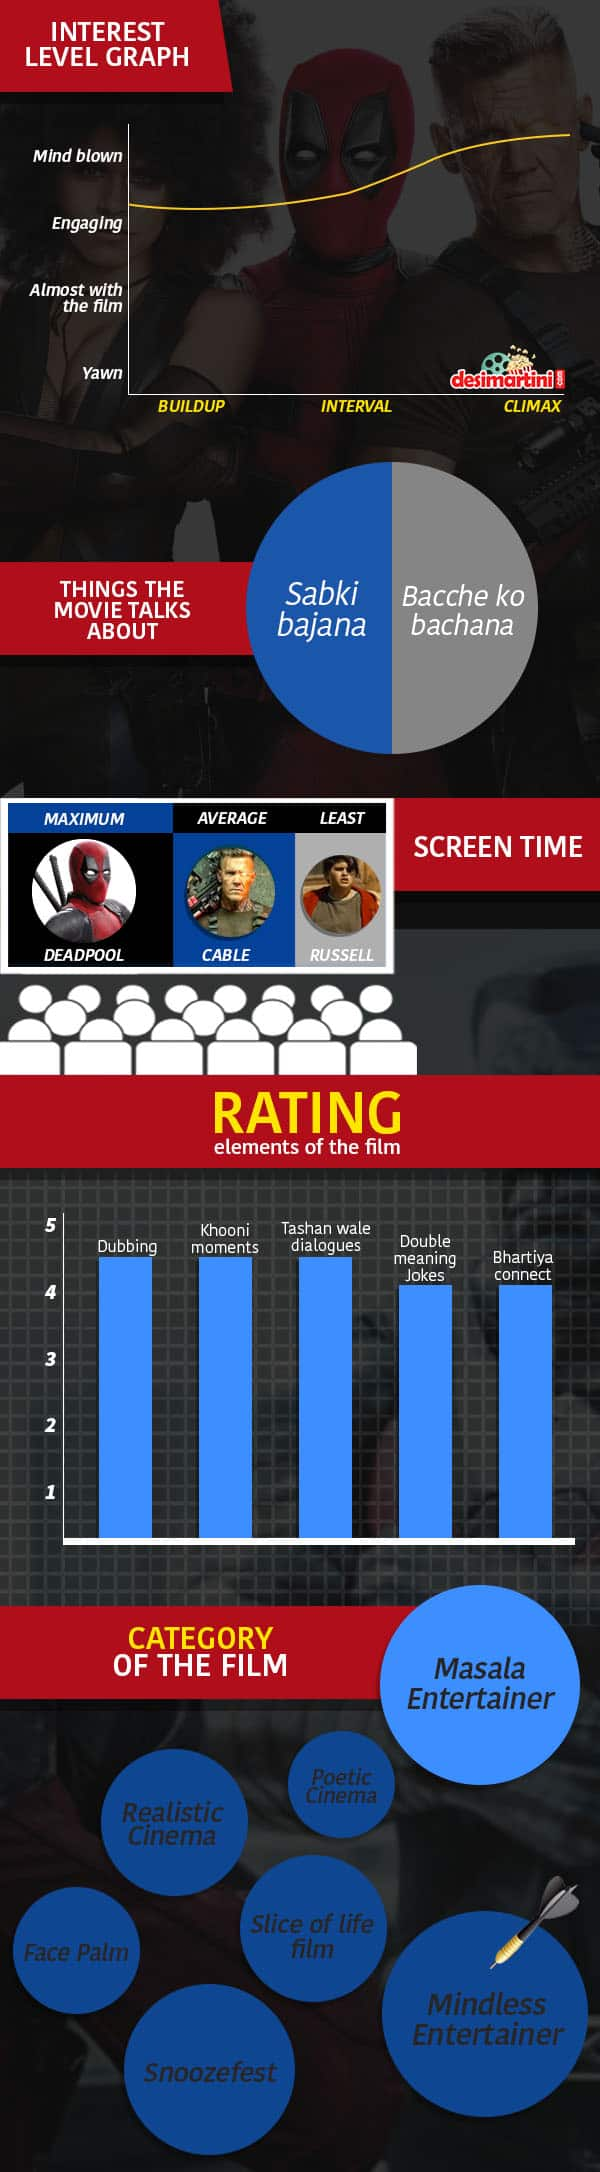 This Tabadh Tadh Pictorial Review Of Deadpool 2 Will Tell Whether To Watch The Film!